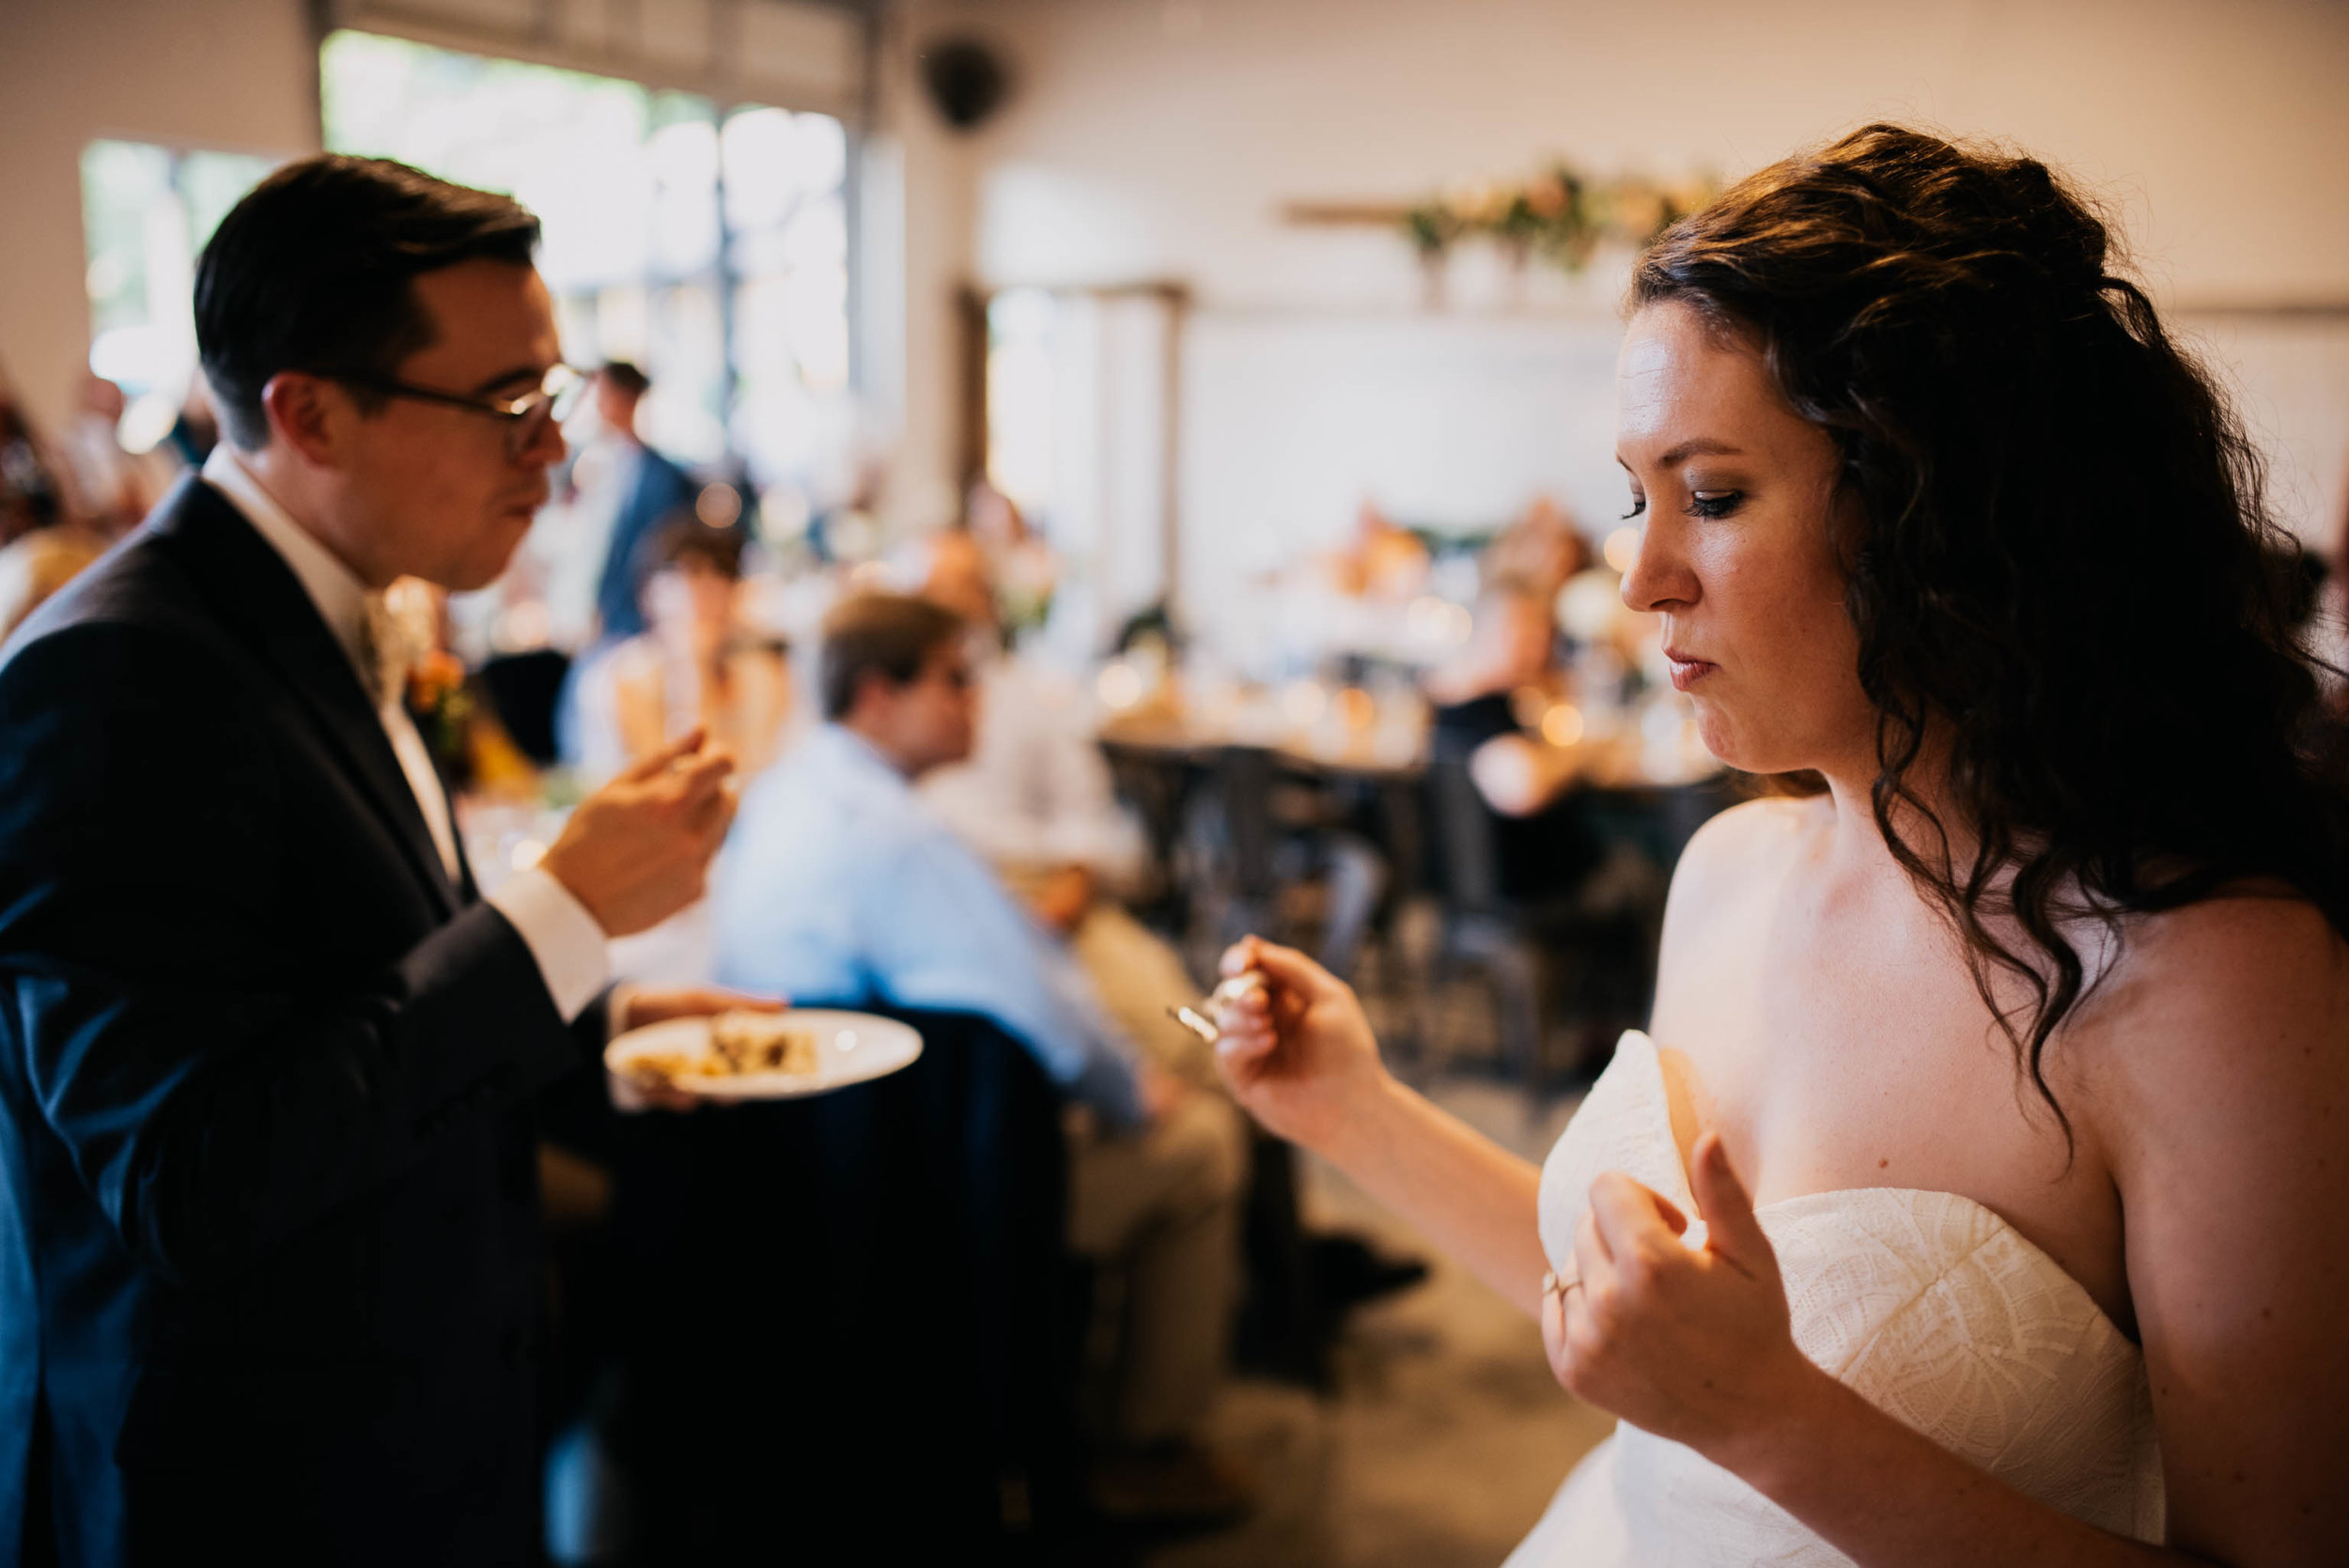 bride doing a little shimmy showing her appreciation for the wedding cake